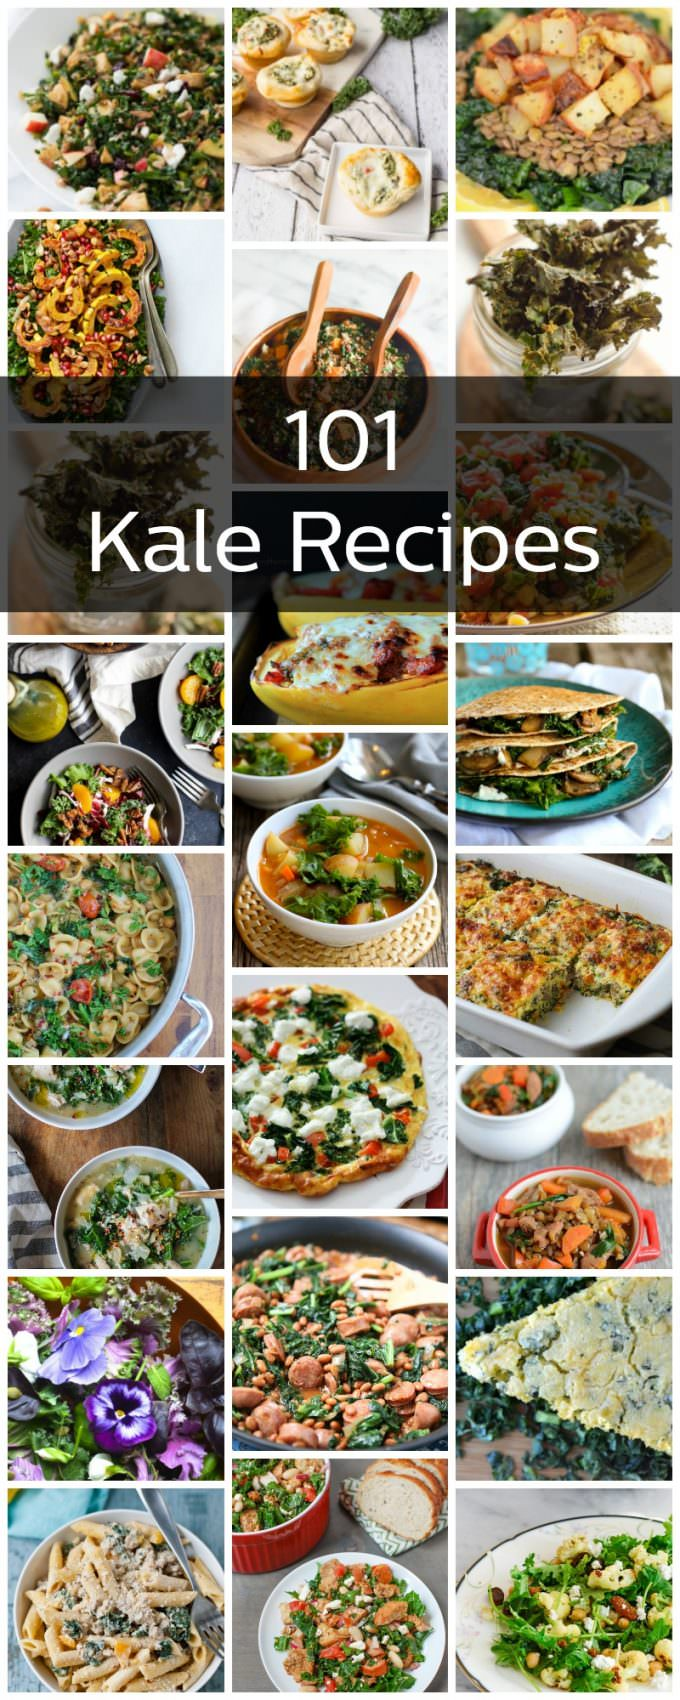 All the delicious kale recipes that you could ever need. From salads, to pasta, to smoothies - we've got you covered.